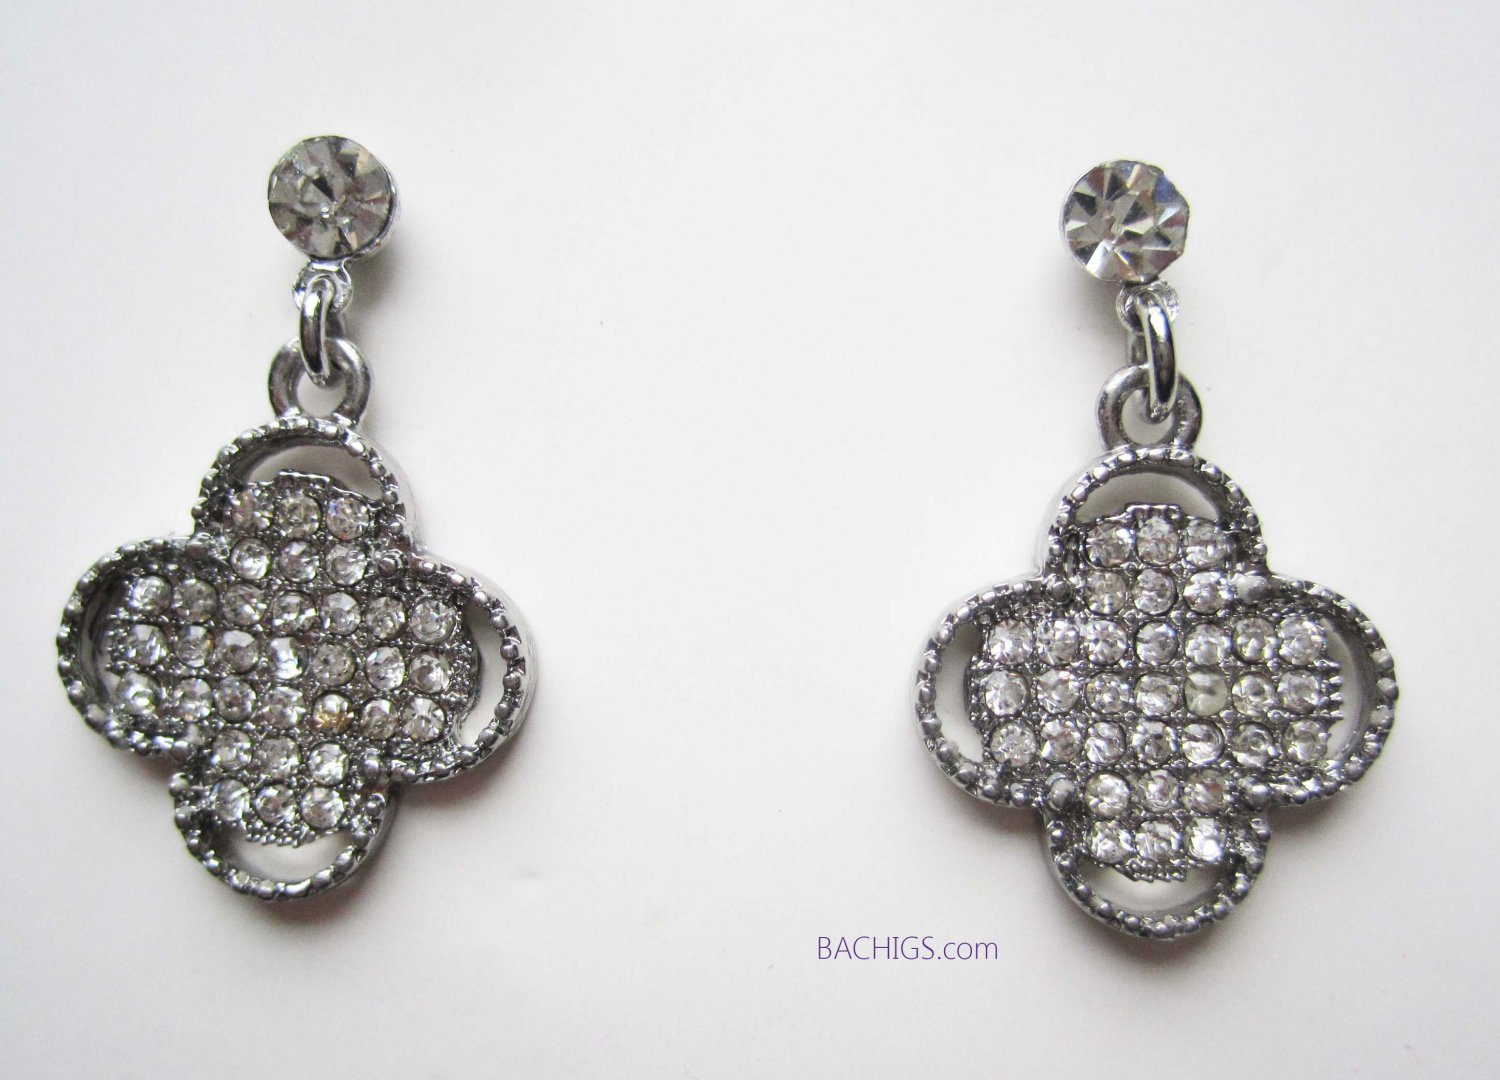 Silver earrings clover with crystals cross fashion jewelry